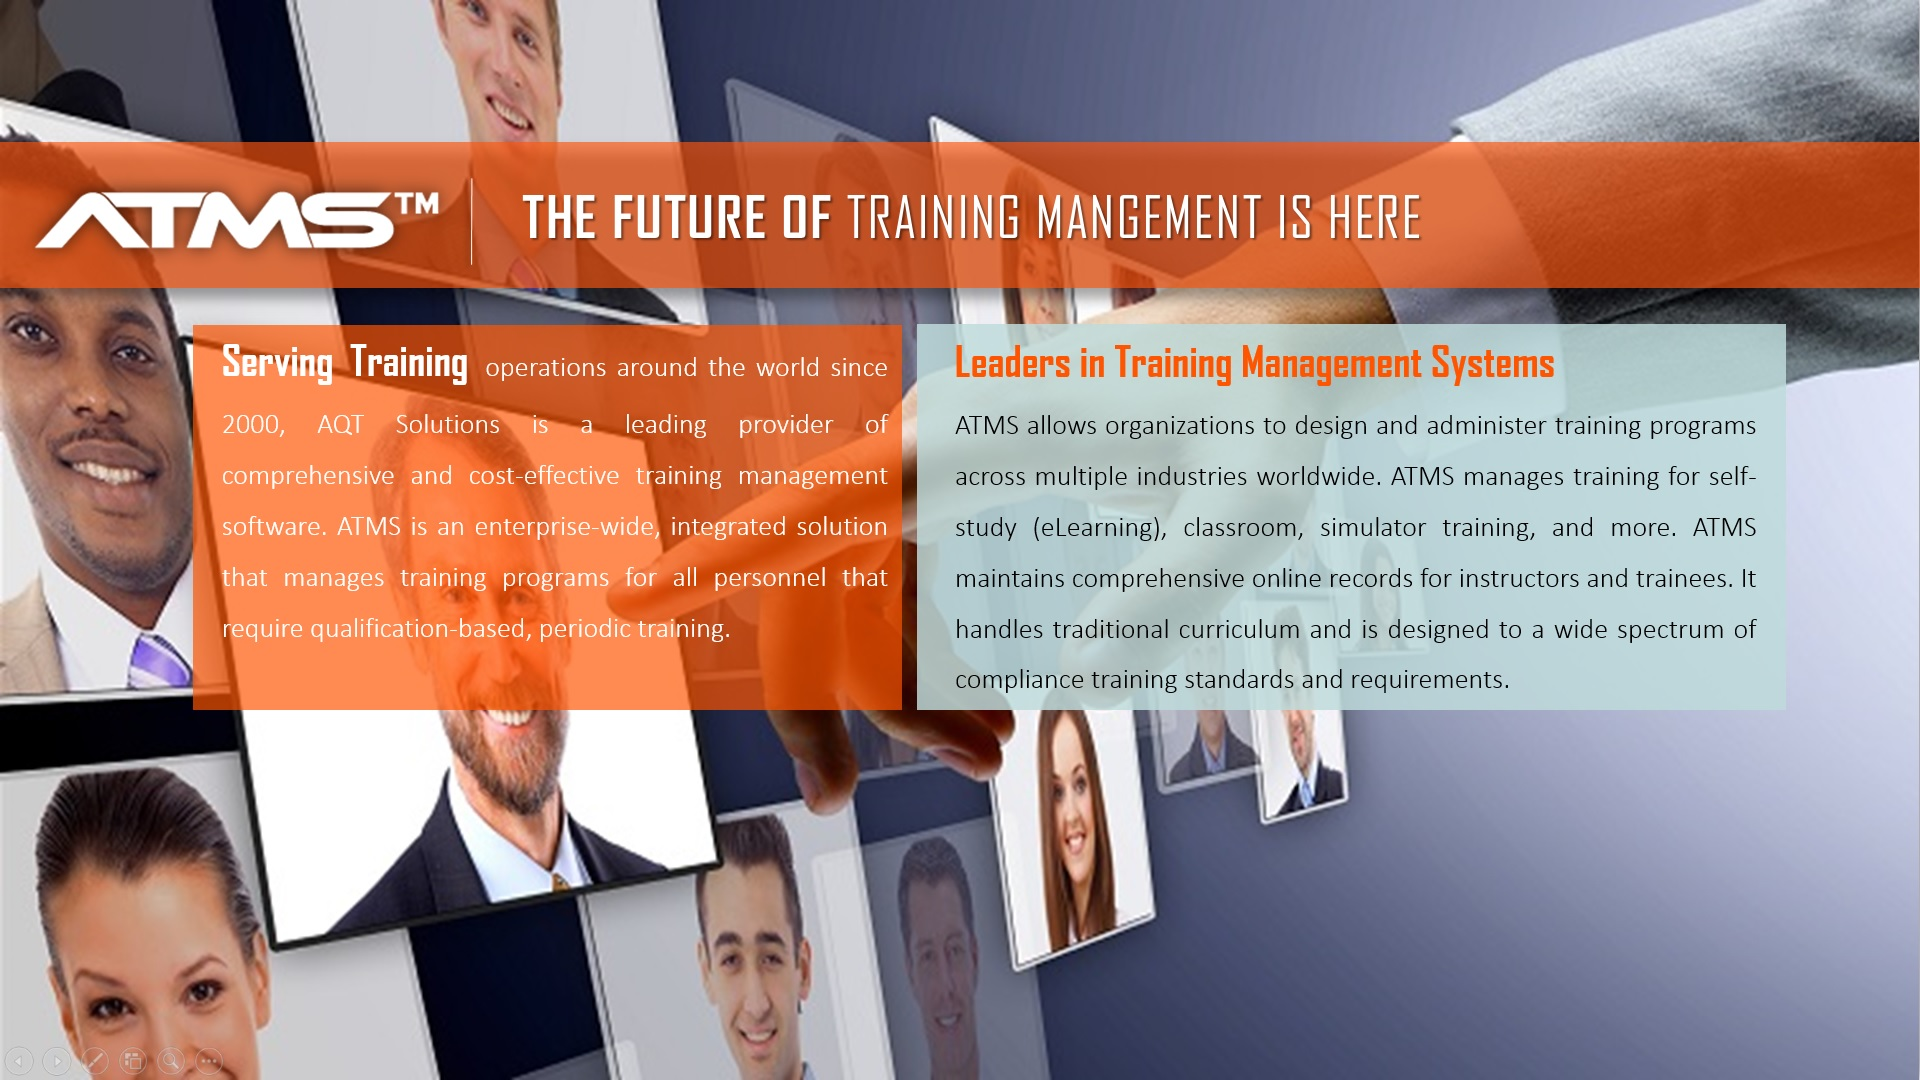 ATMS-Advance-Training-Management-System-Slide-2-1